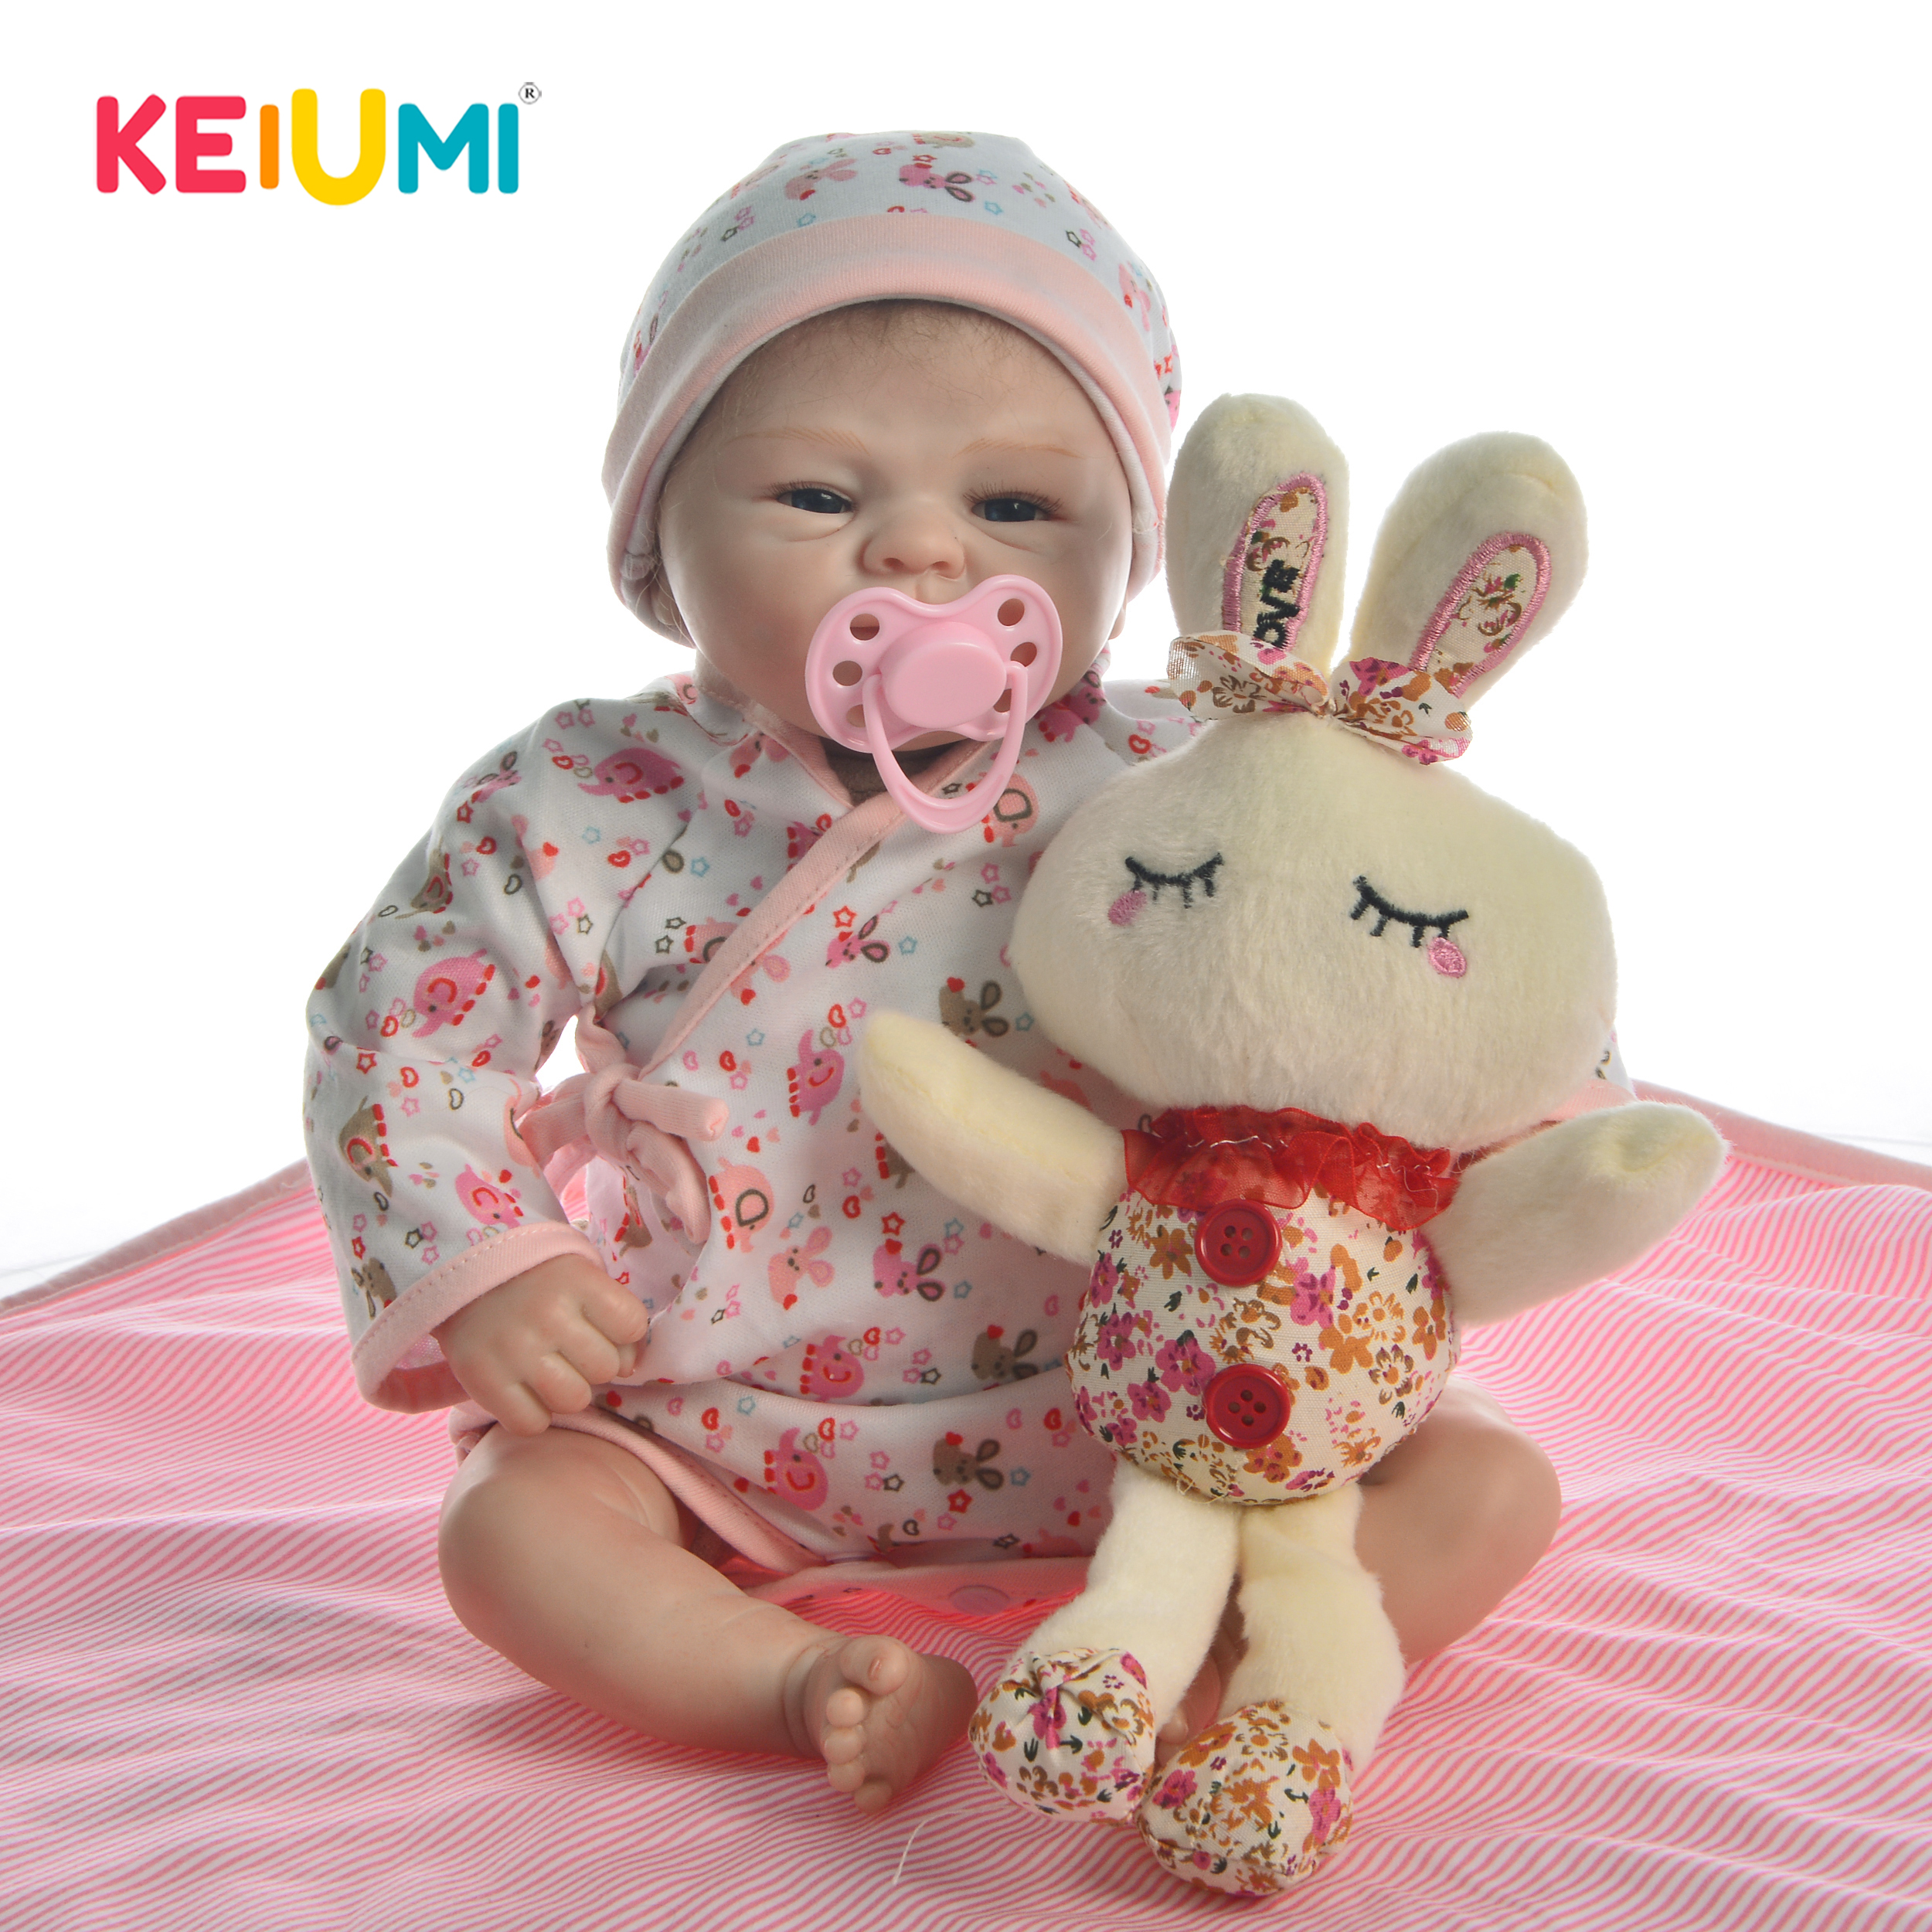 Unique 17 inch 43 cm Lifelike Baby Reborn Baby Doll Realistic Soft Silicone Reborn Little Babies